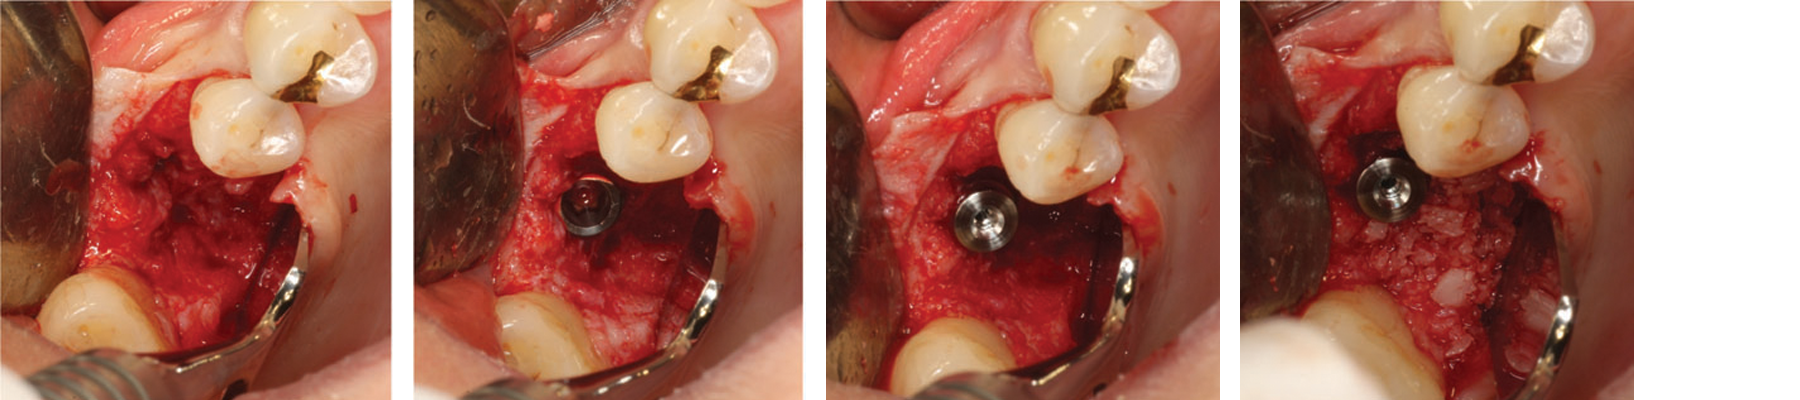 Intra-operative view.